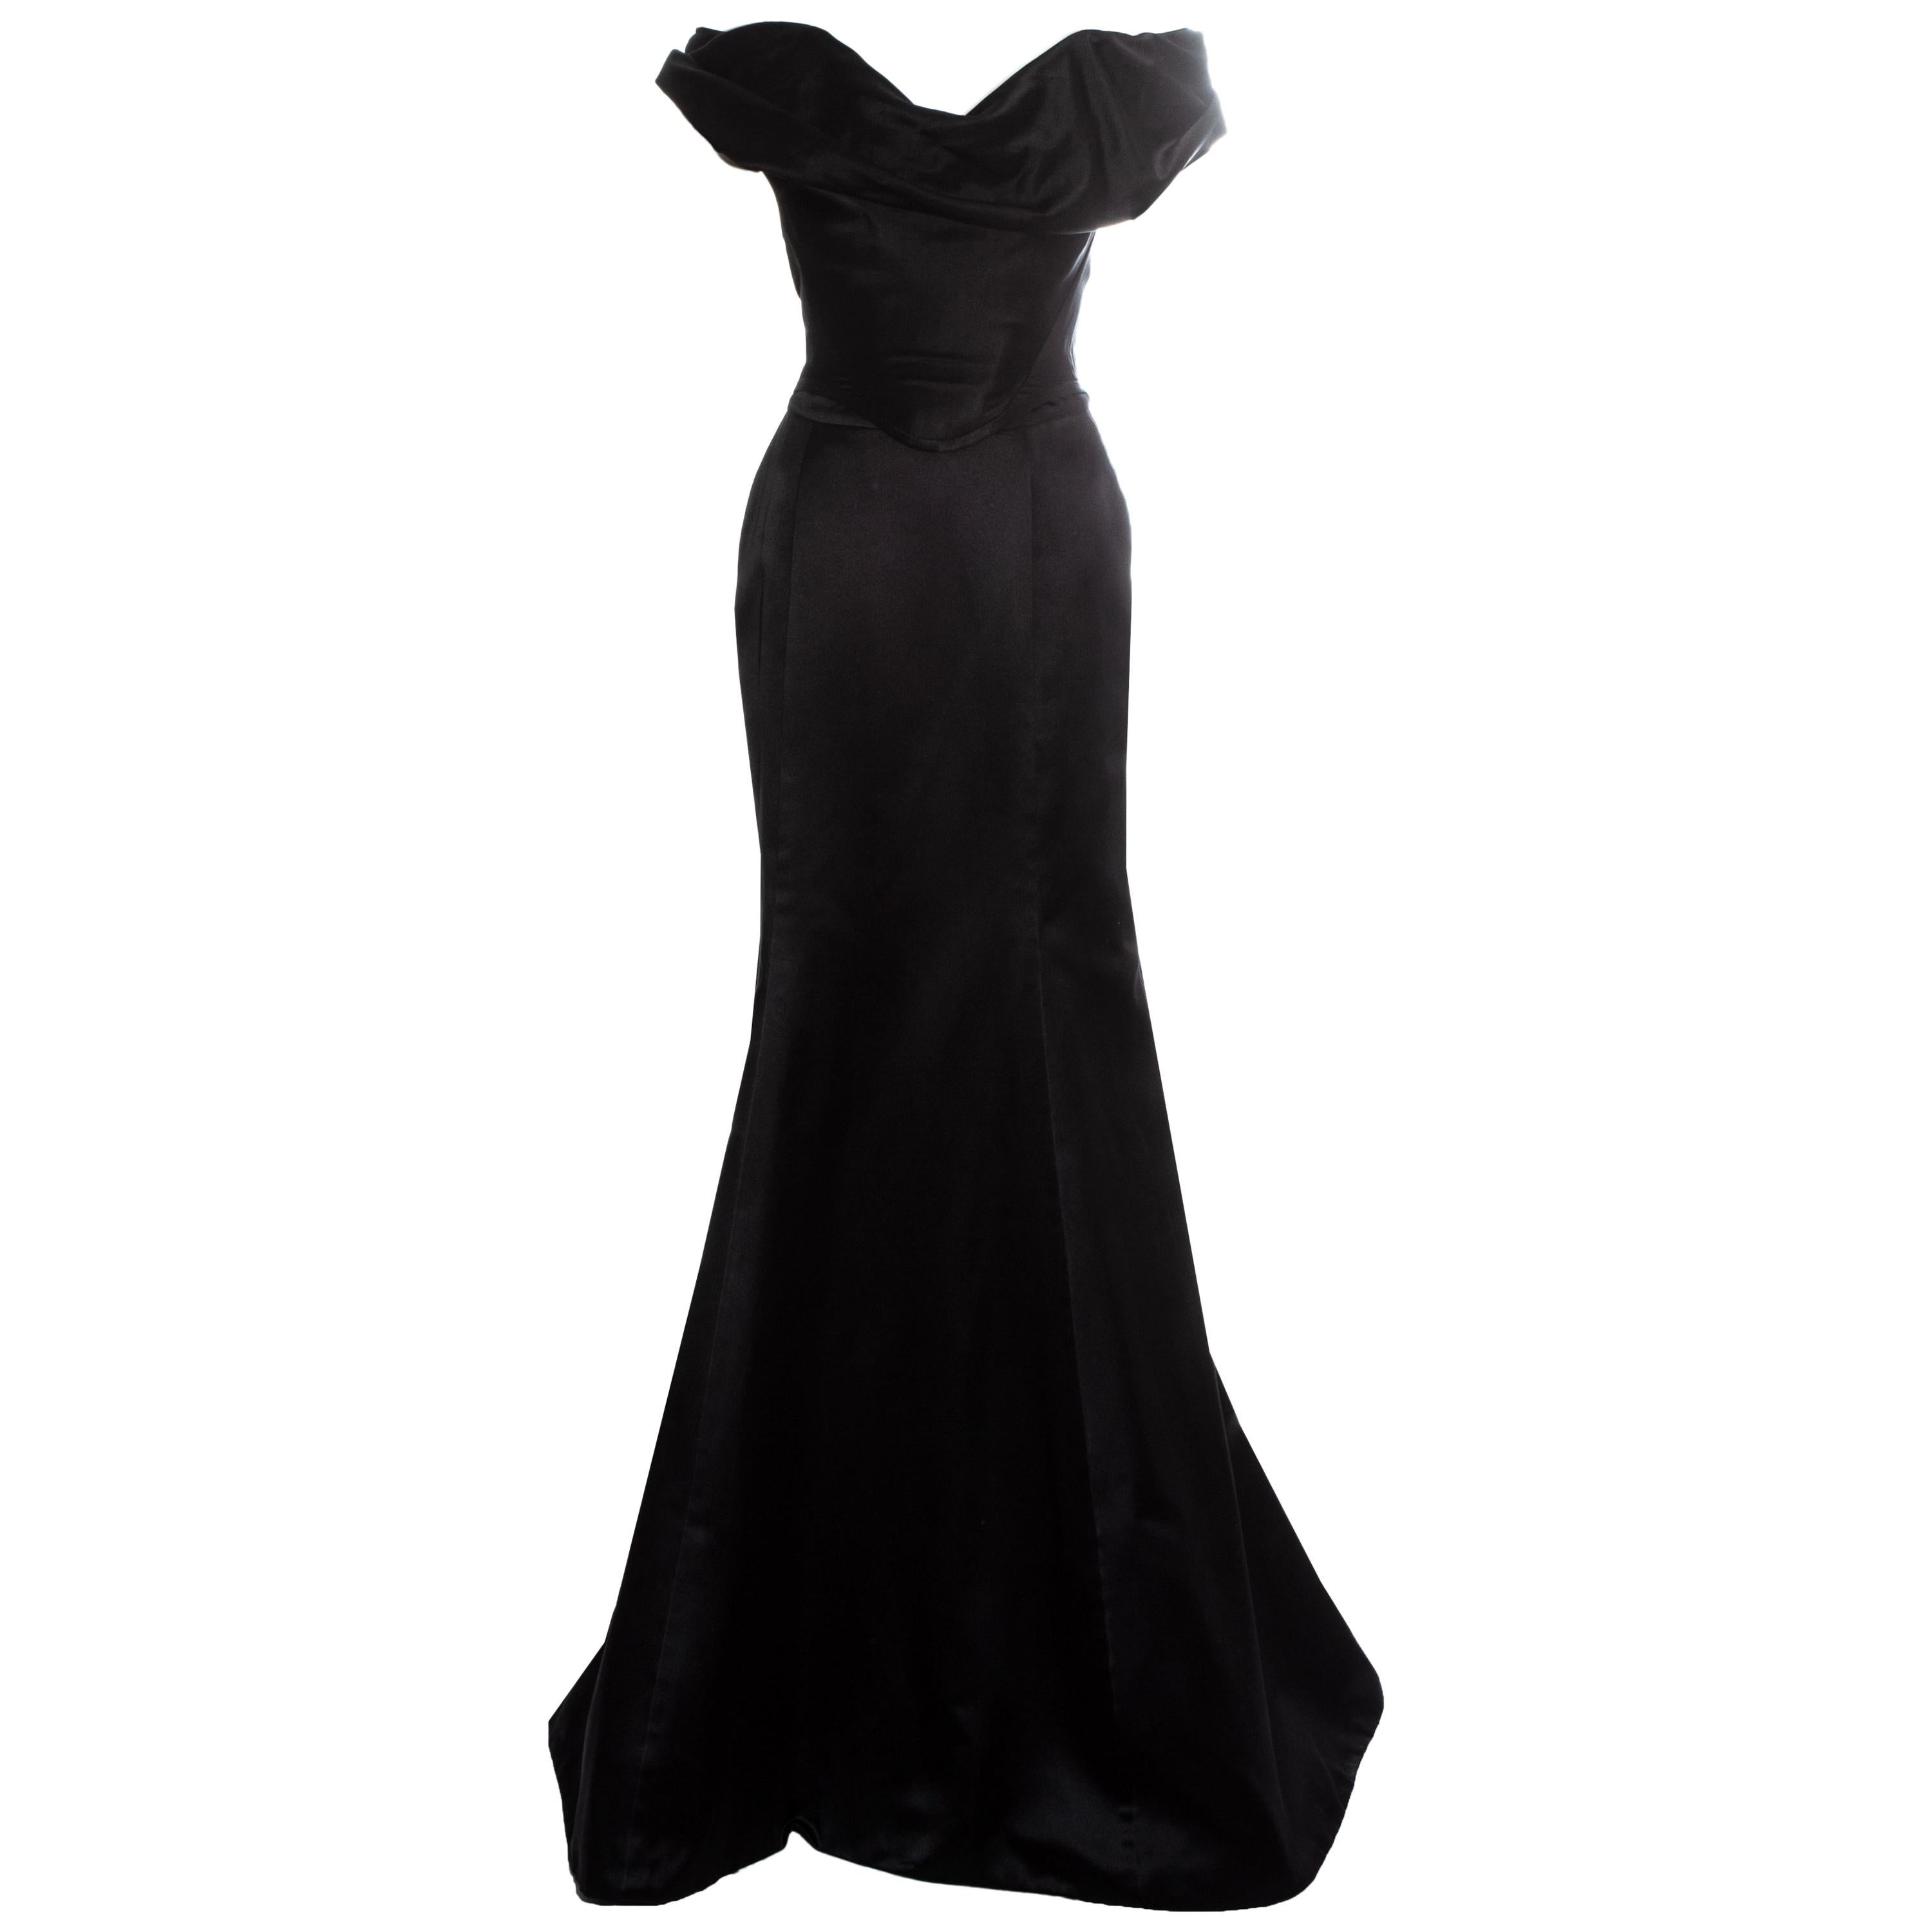 Vivienne Westwood Couture black silk corset and trained skirt evening set